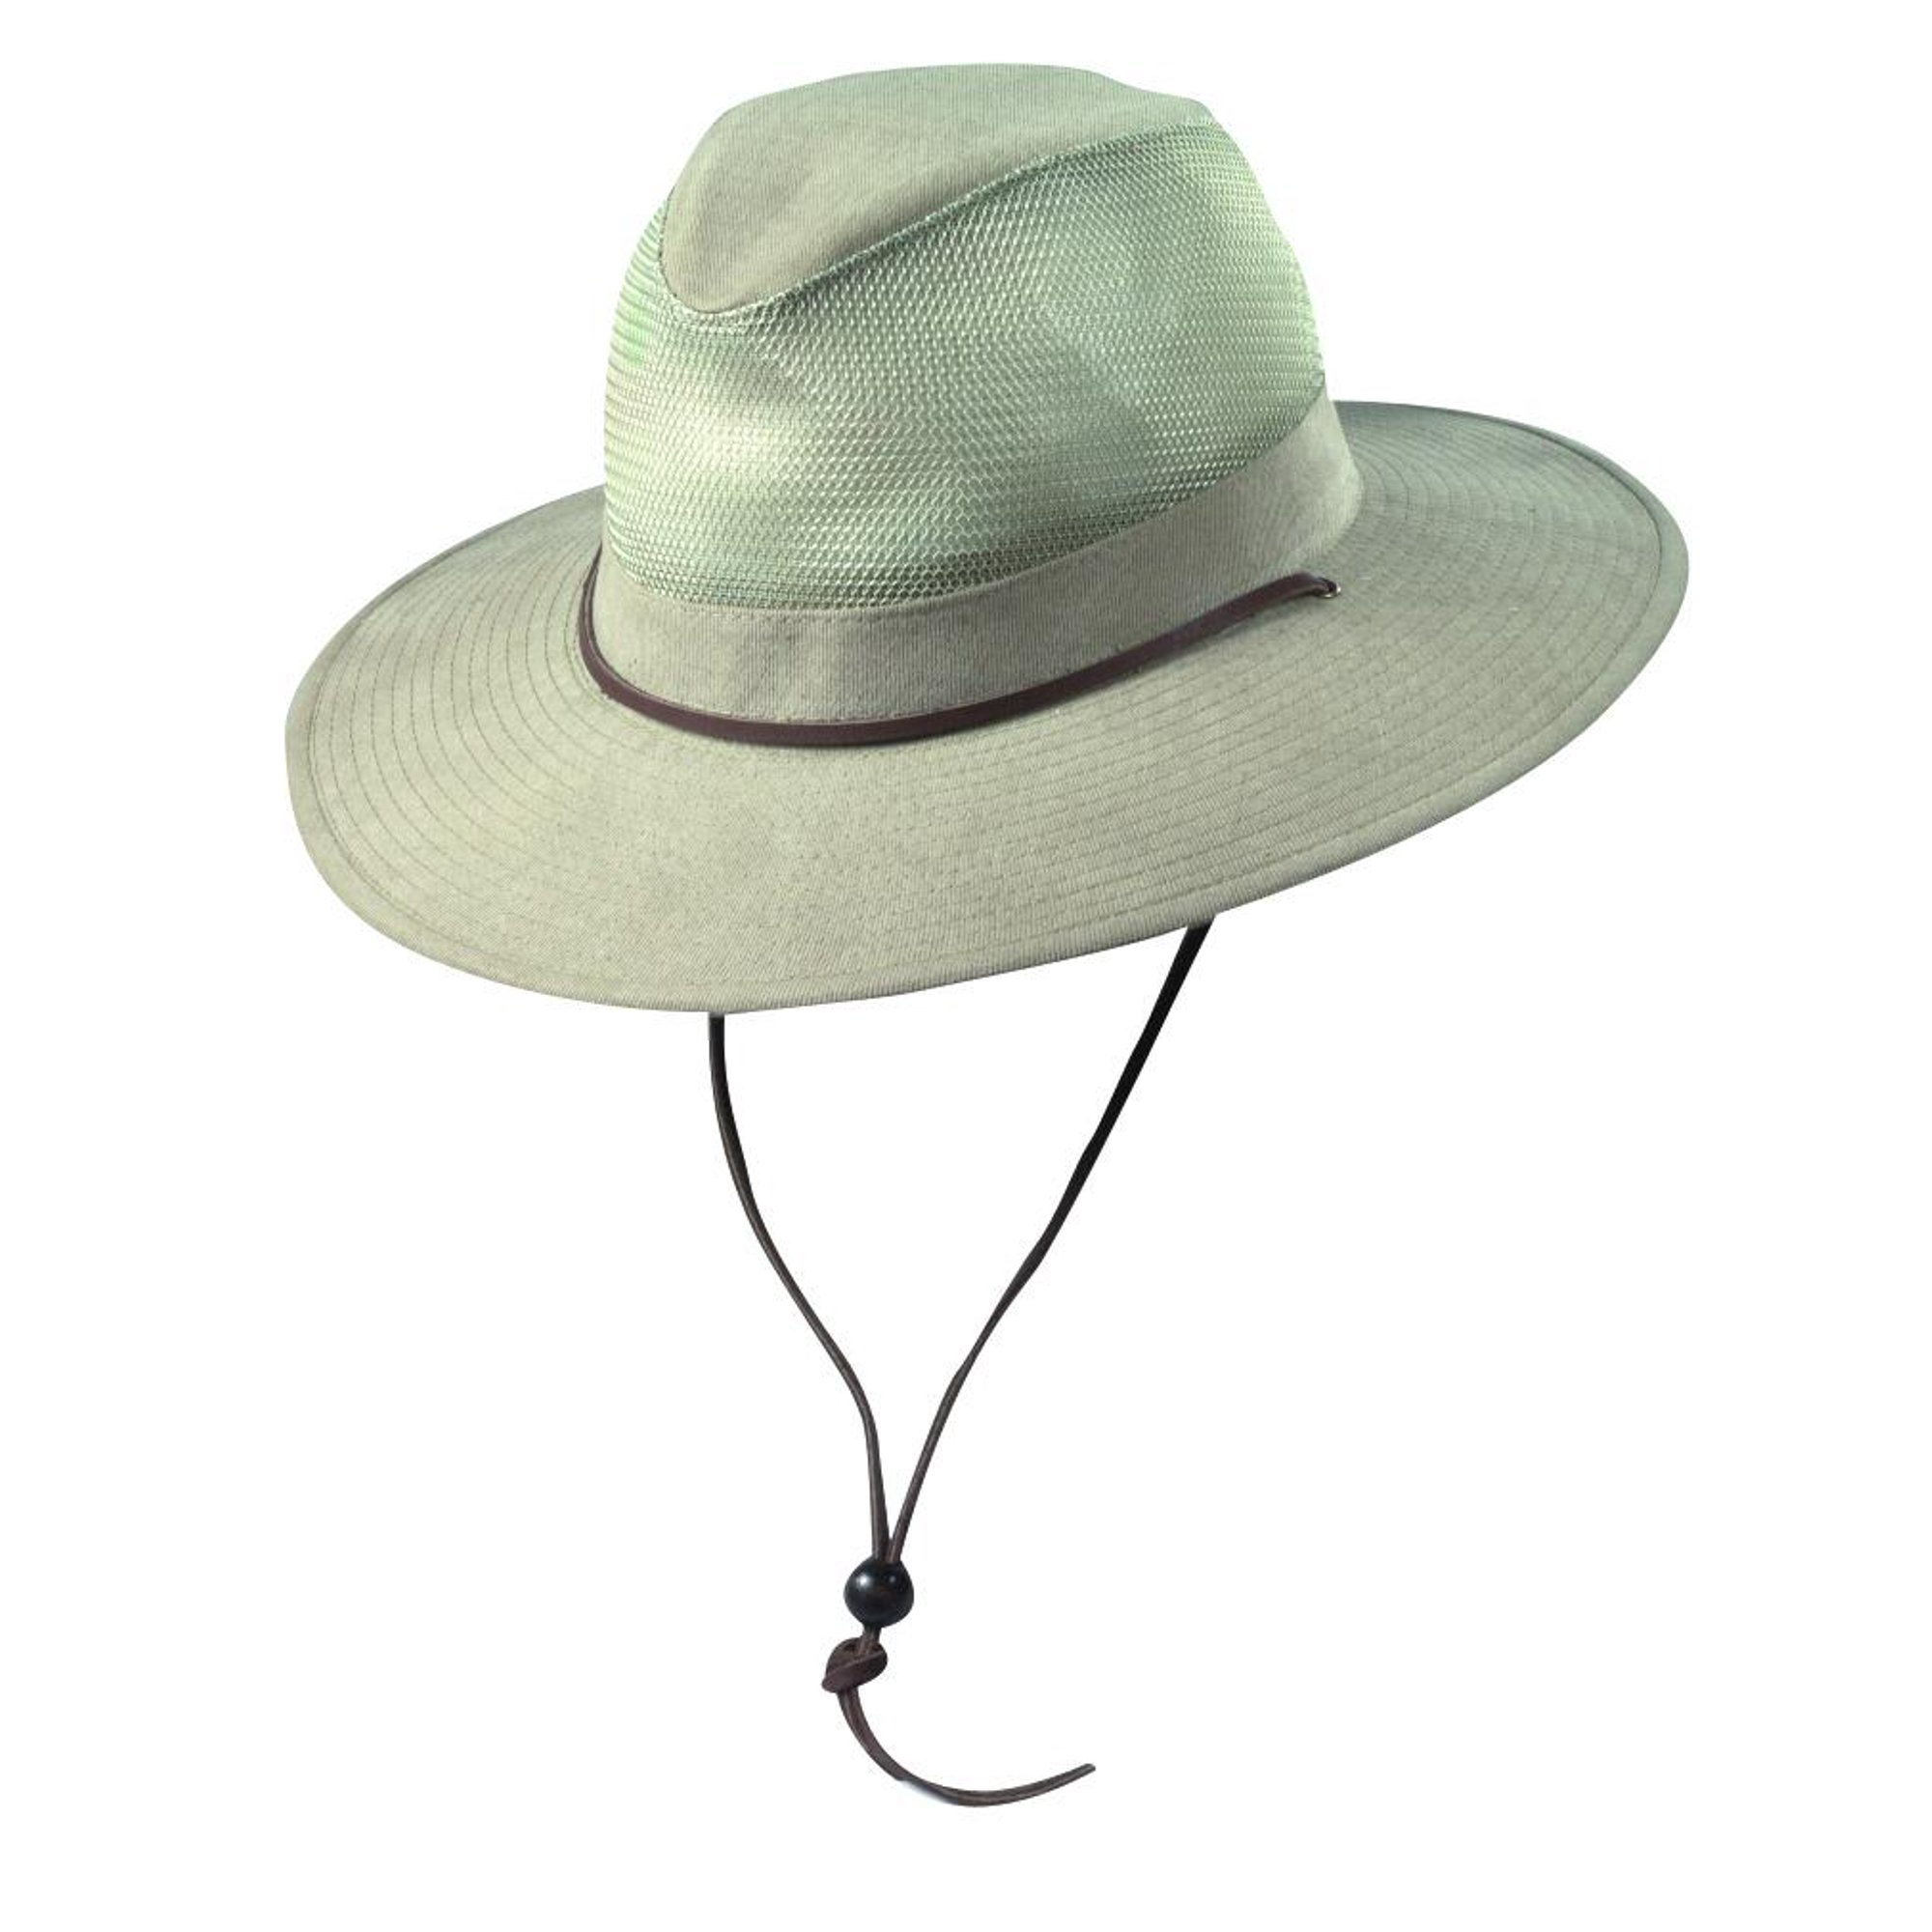 dcc43f02a3a6c Dorfman Pacific Men s Cotton Wide Brim Mesh Safari Hat